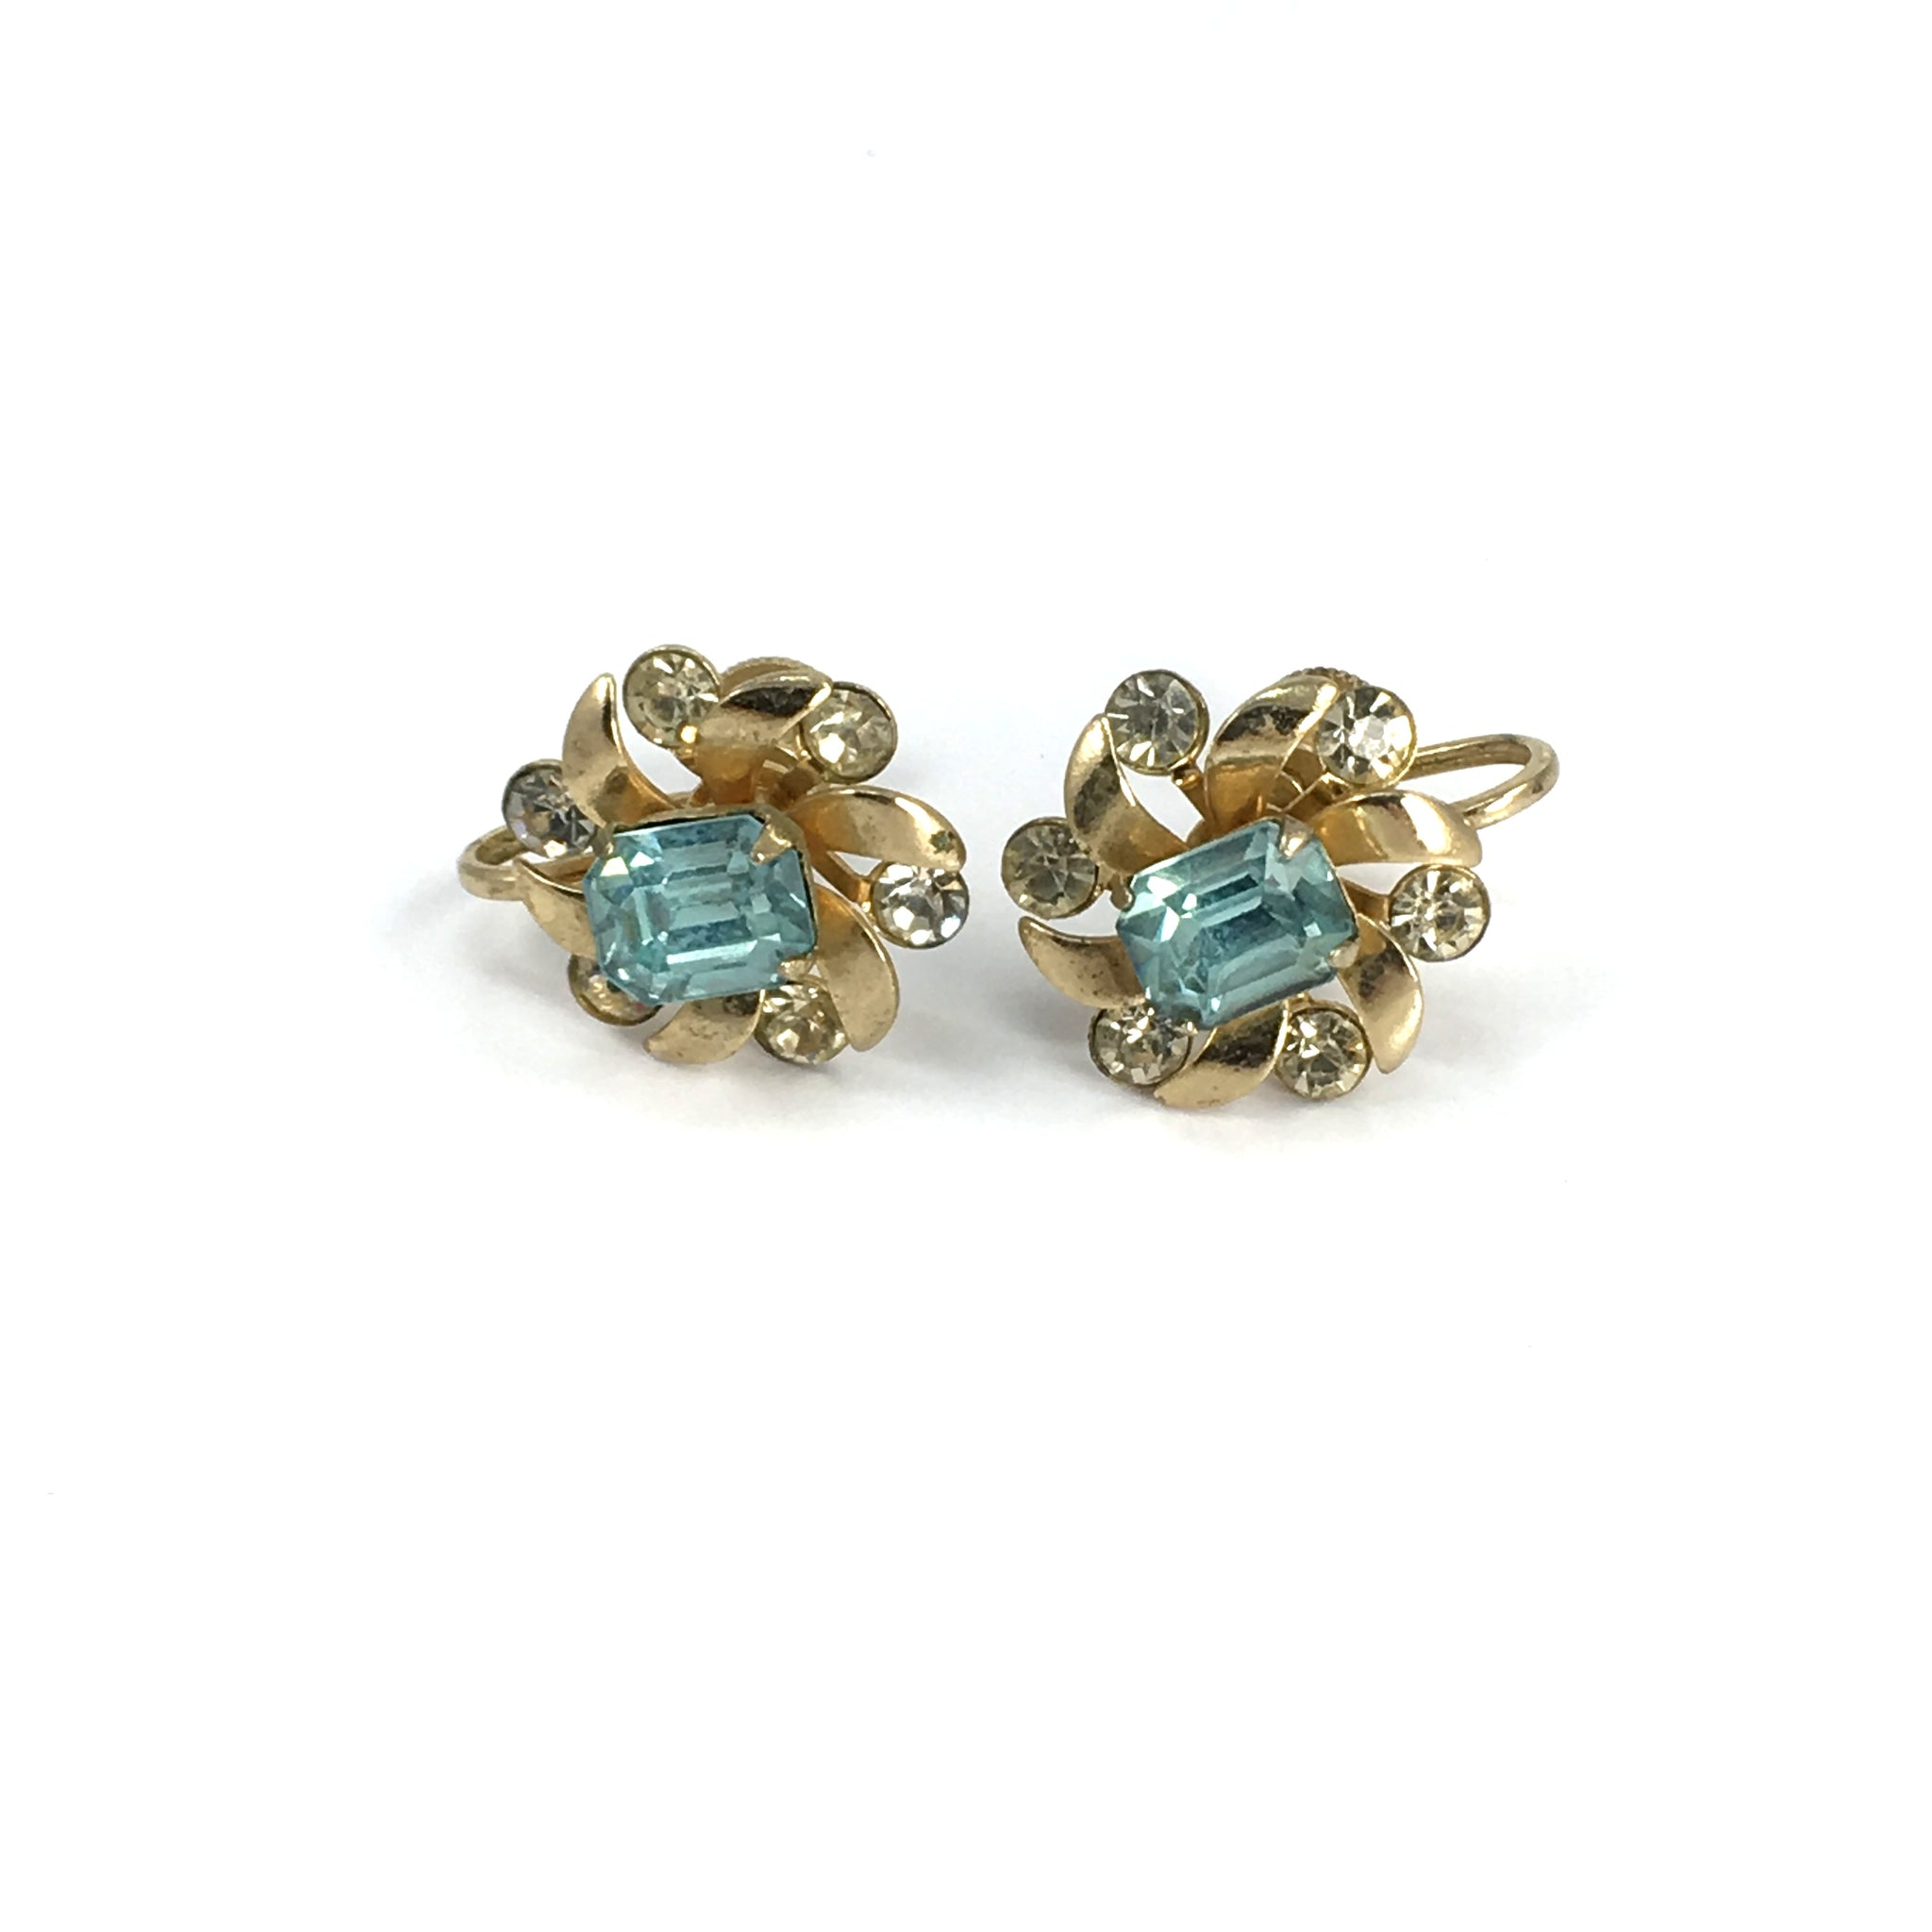 Vintage Gold Coro Earrings Screw Back Ladies Aquamarine Stones (c.1950s)